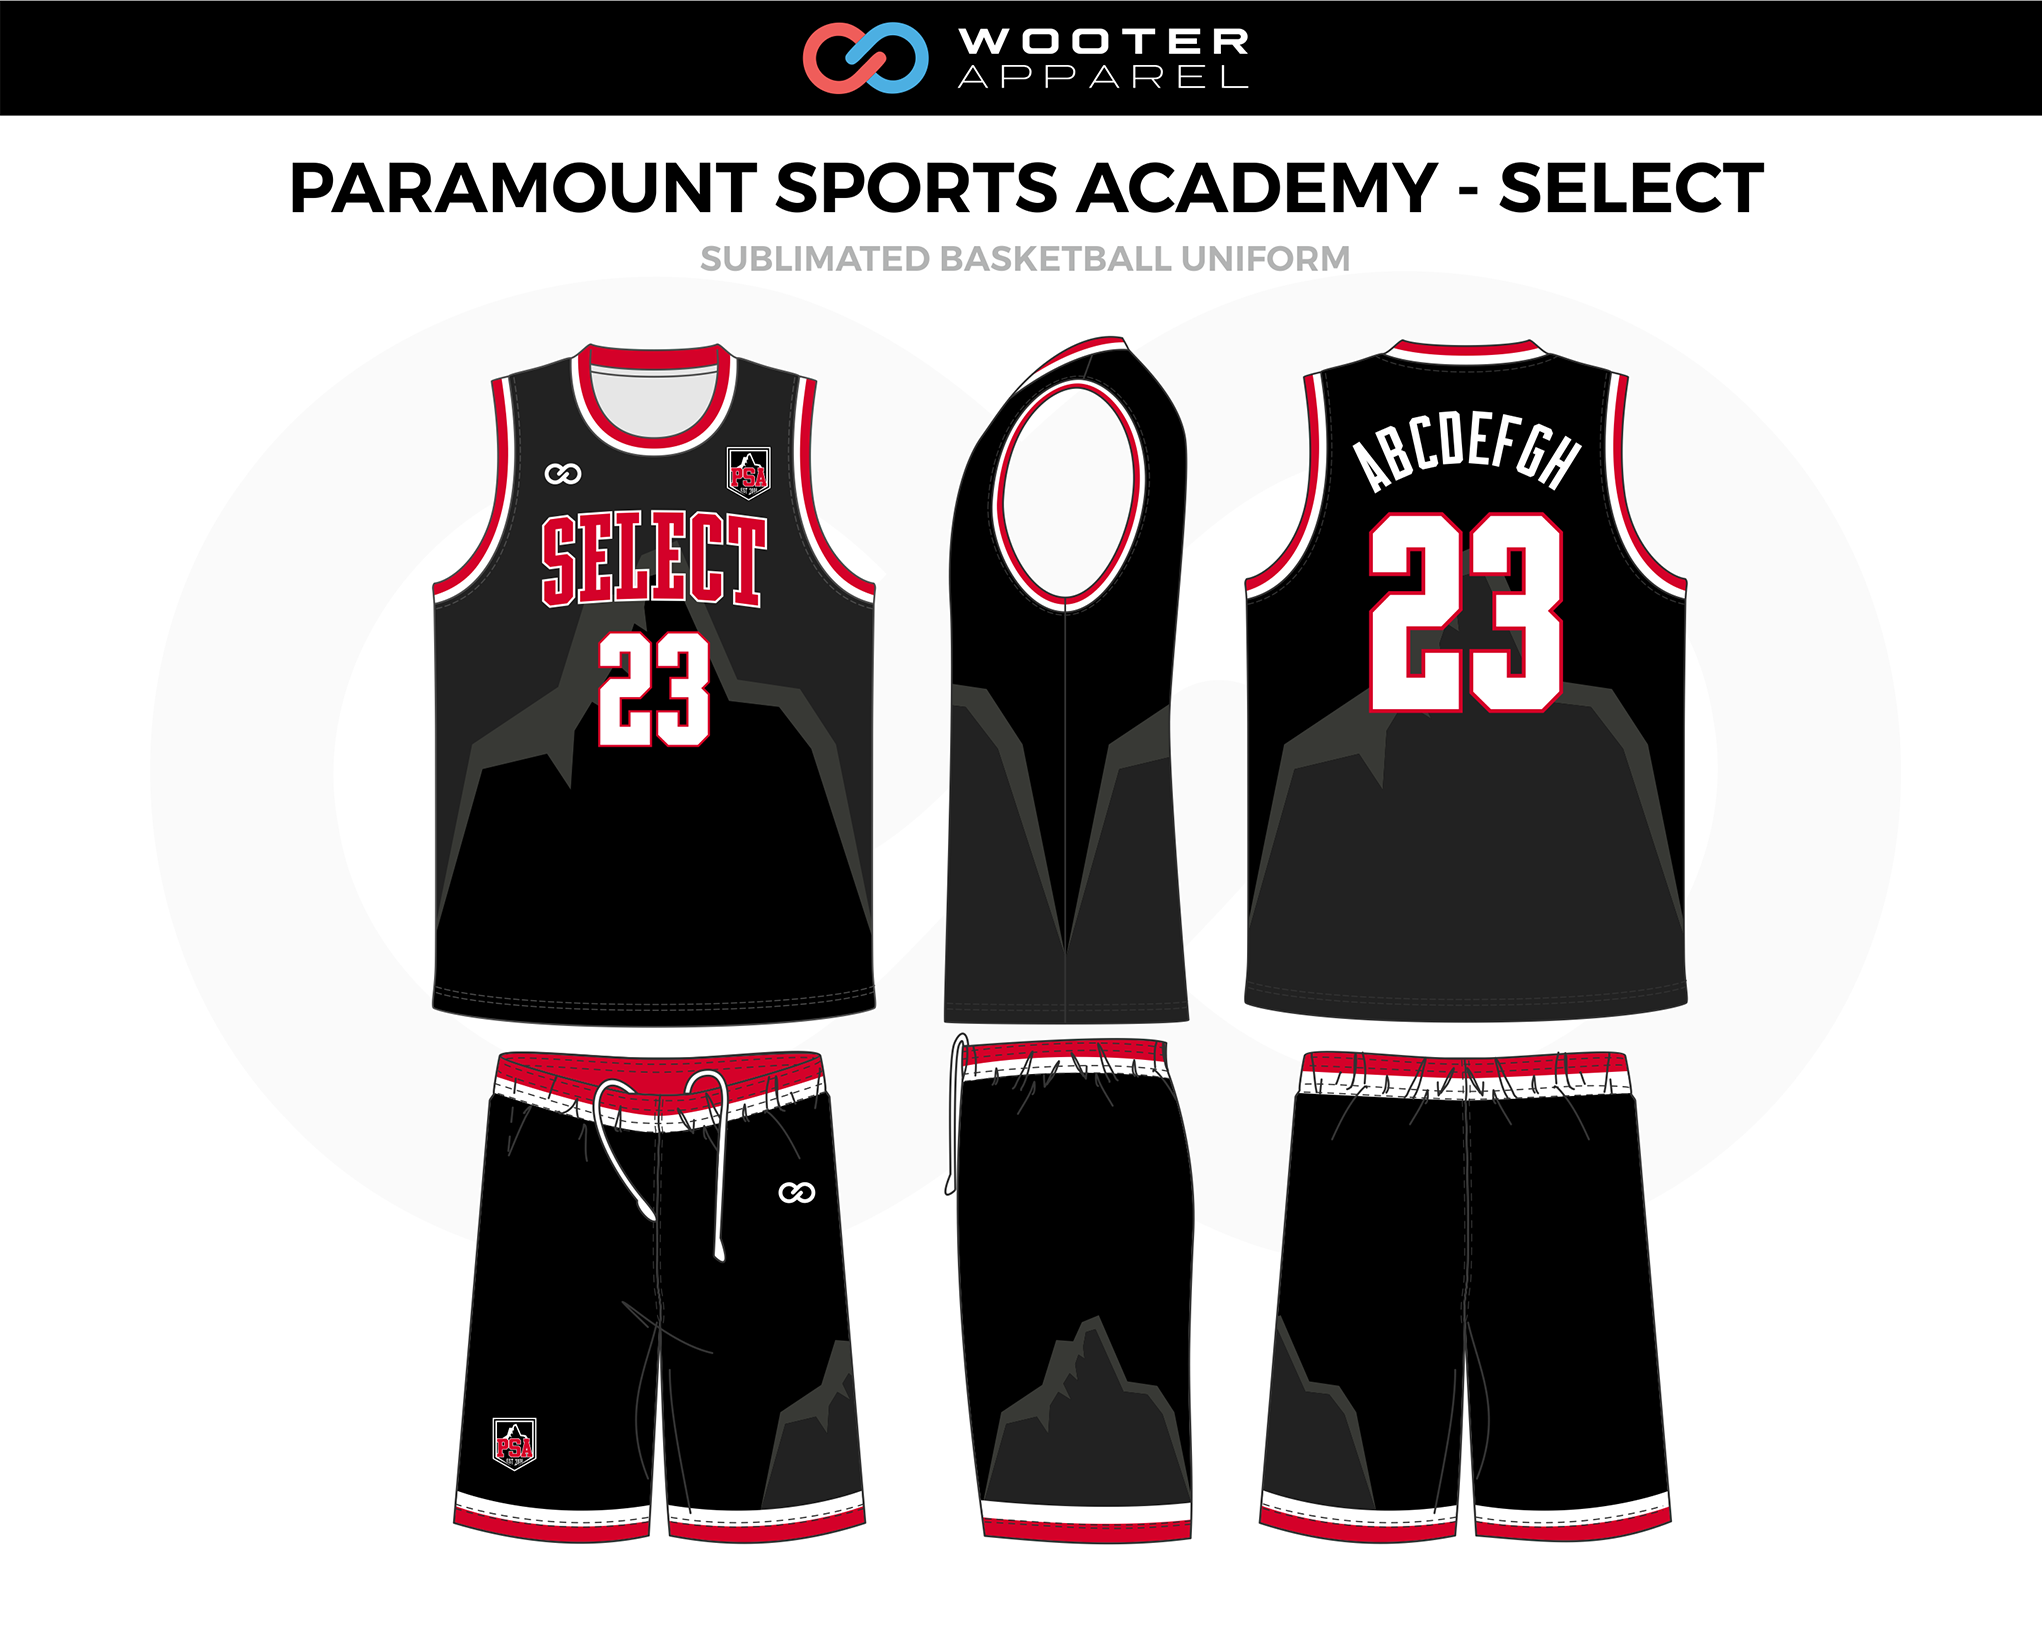 PARAMOUNT SPORTS ACADEMY- SELECT Black Red White Basketball Uniform, Jersey and Shorts